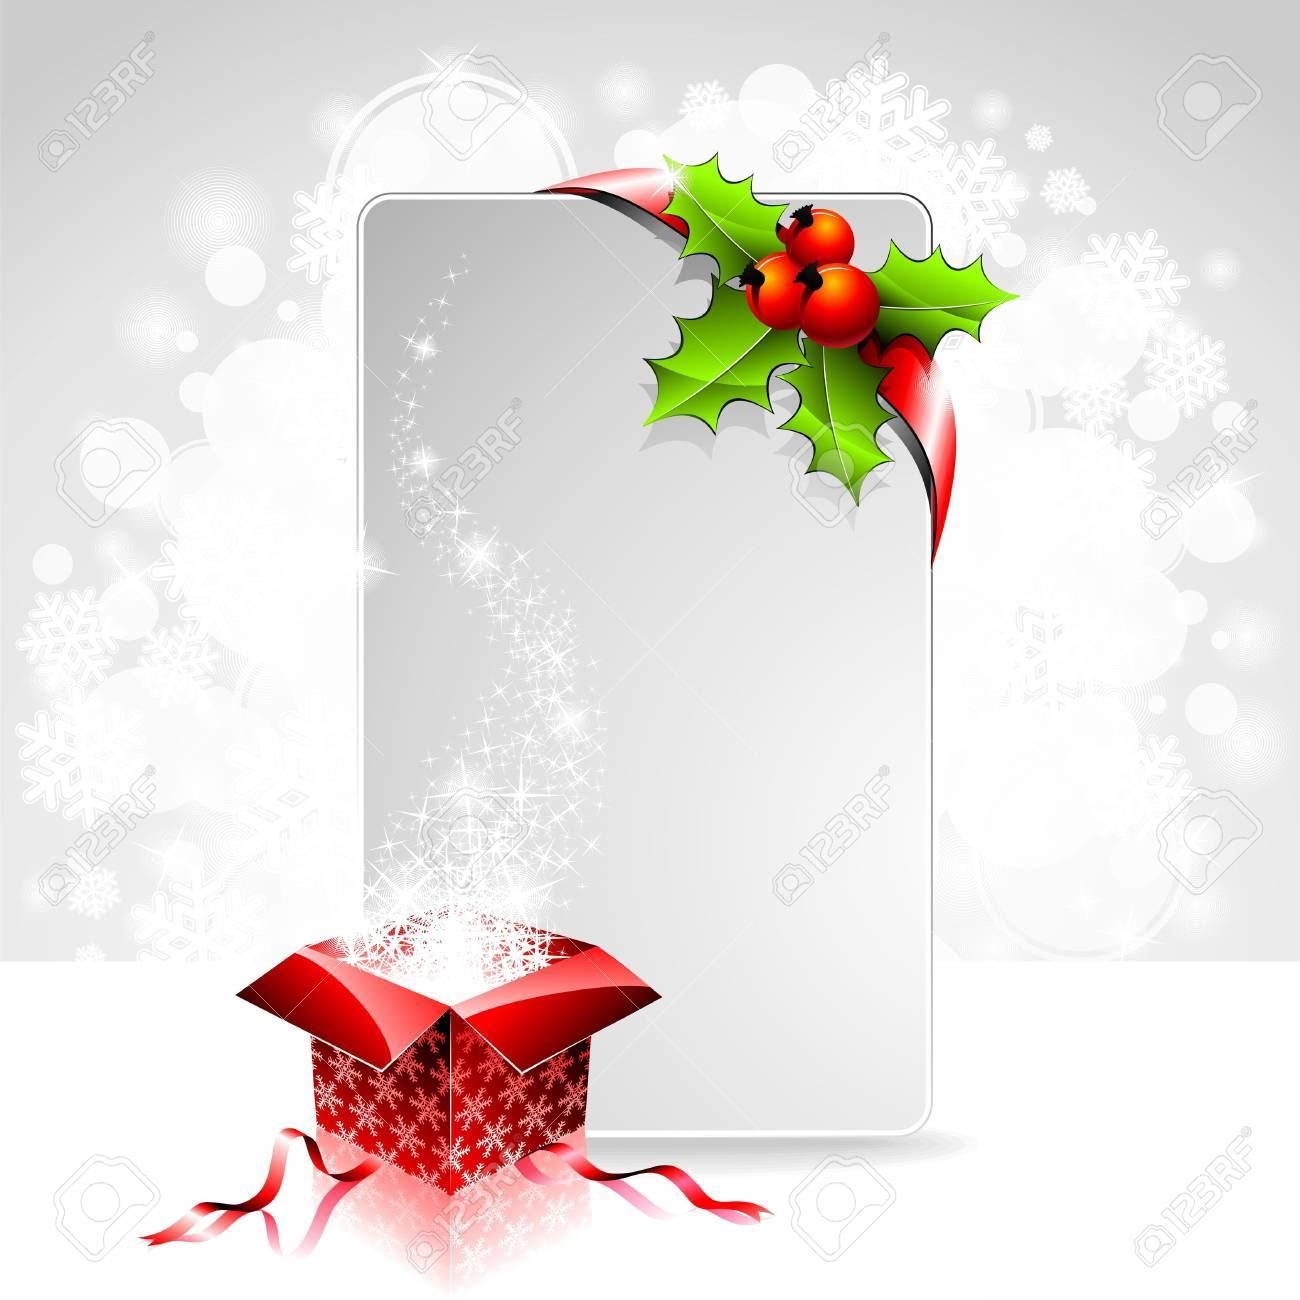 holiday illustration on a Christmas theme with gift box and clear banner for your text. Stock Vector - 11242142